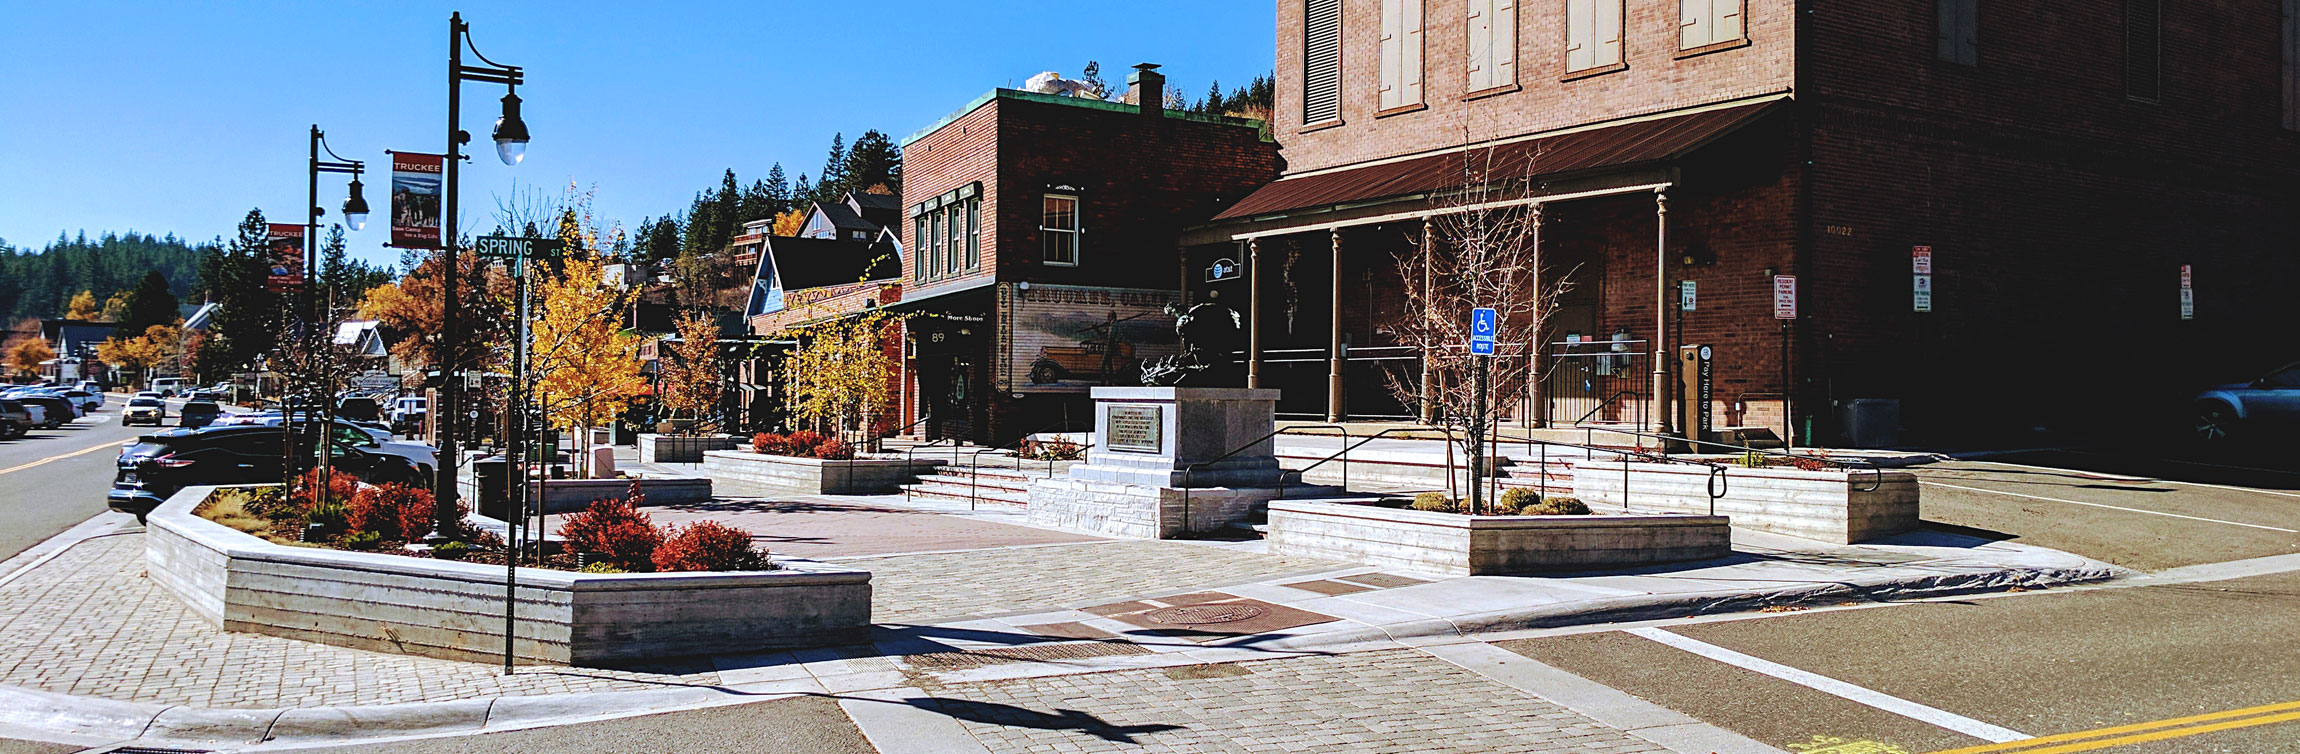 downtown_truckee_tahoe_brickelltown_streetscape_improvement_base_mapping_topograhic_survey_legal_description_writing_boundary_union_pacific_railroad_right_way_sage_land_surveying